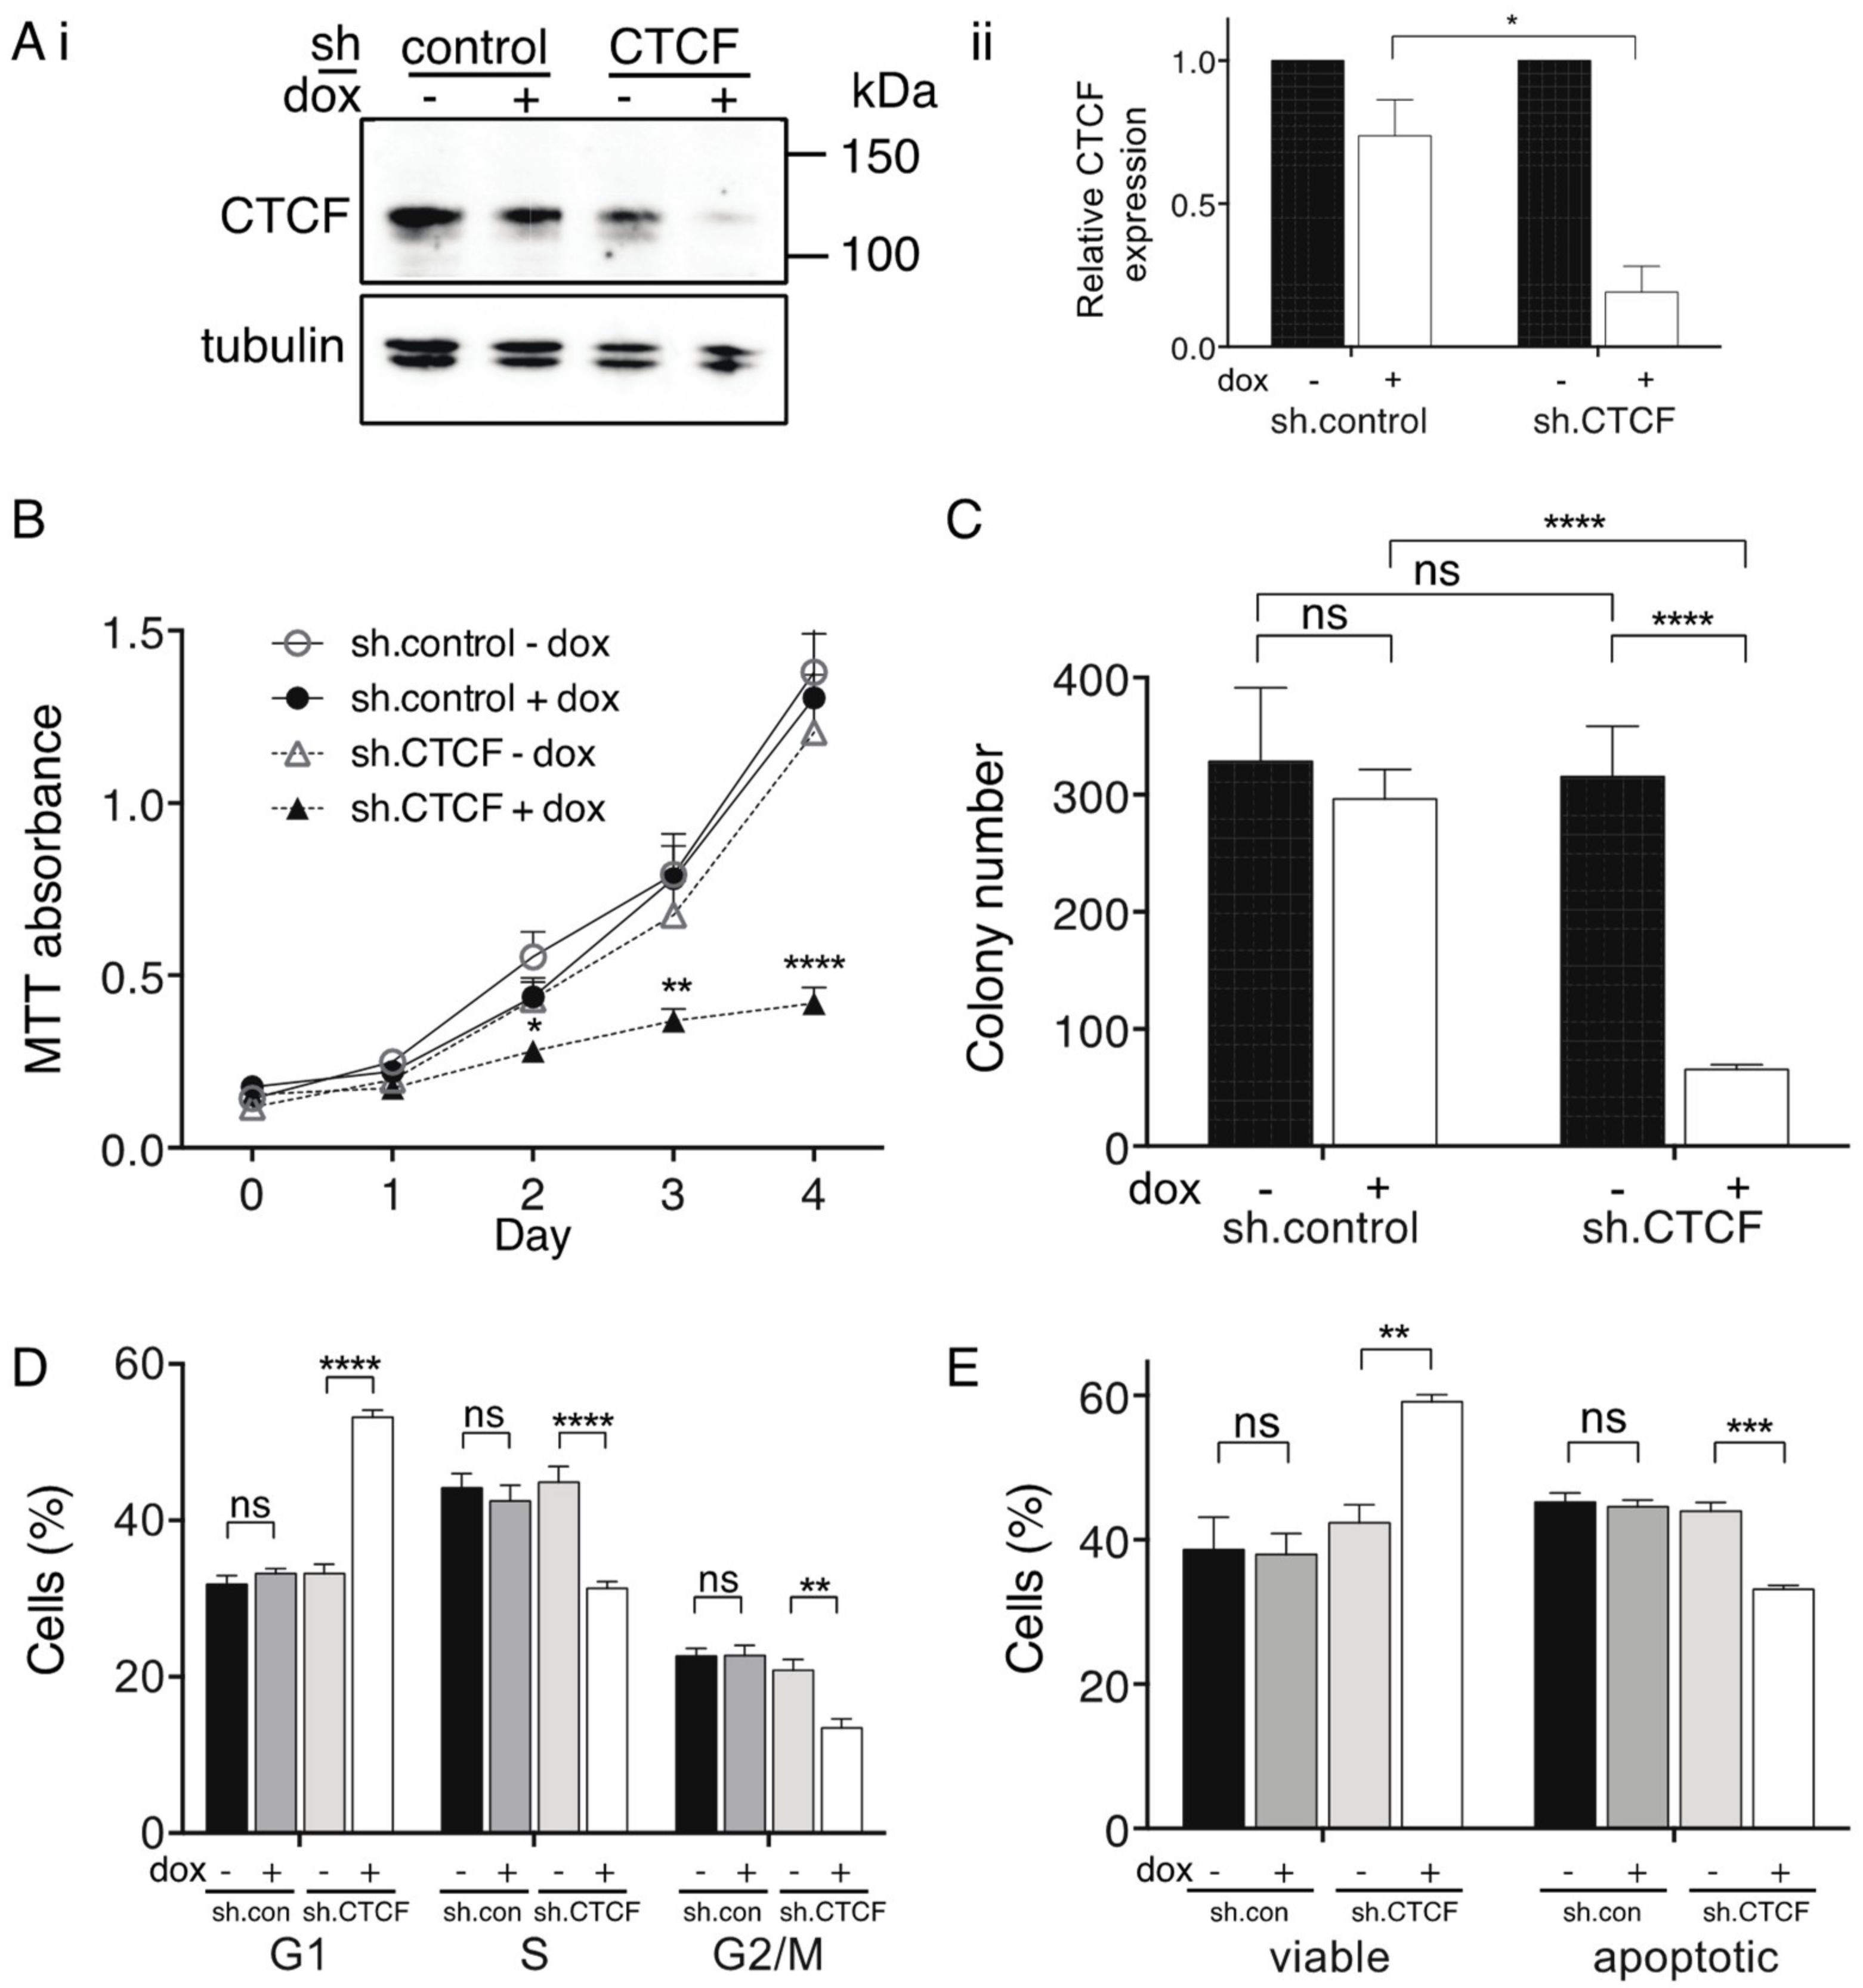 710c1cd962e1 IJMS   Free Full-Text   CTCF Expression is Essential for Somatic ...